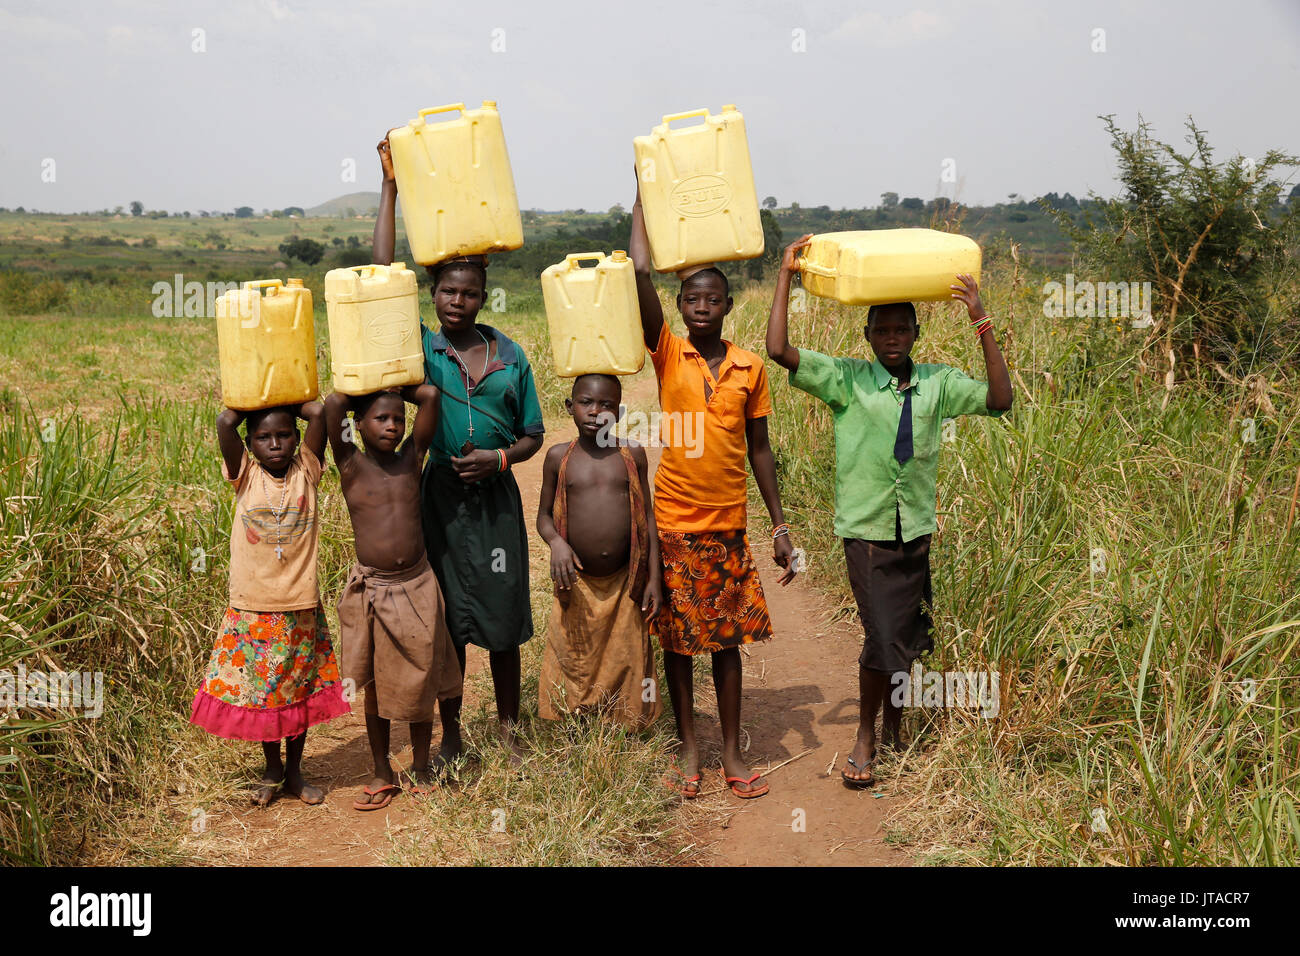 Ugandan children fetching water, Masindi, Uganda, Africa - Stock Image